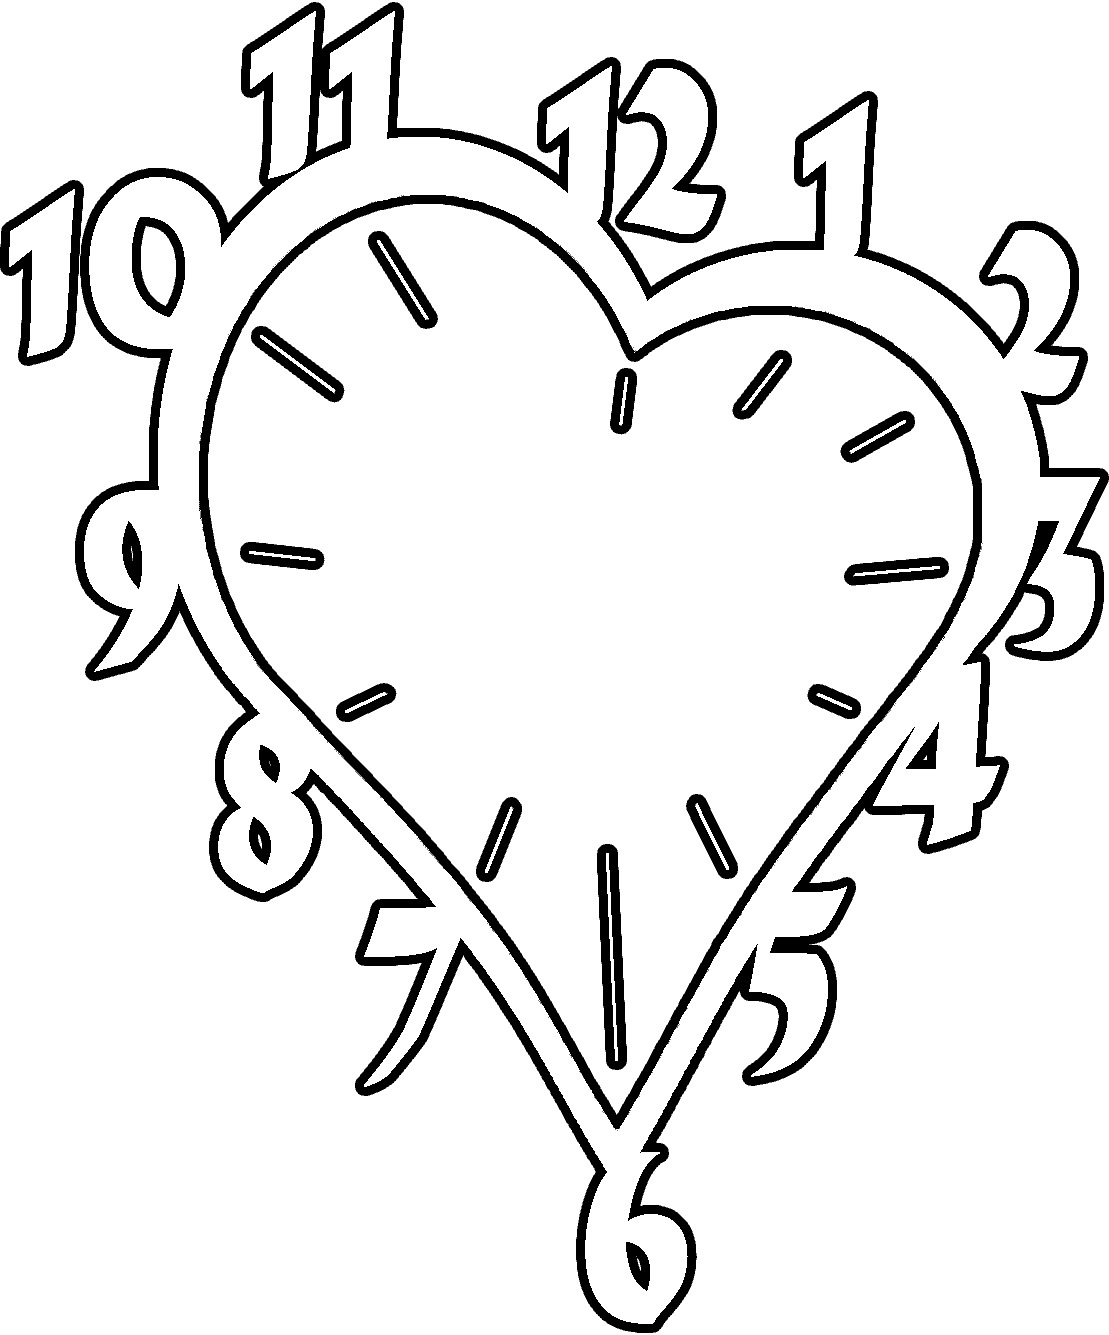 coloring picture of clock free printable clock coloring pages for kids coloring picture clock of